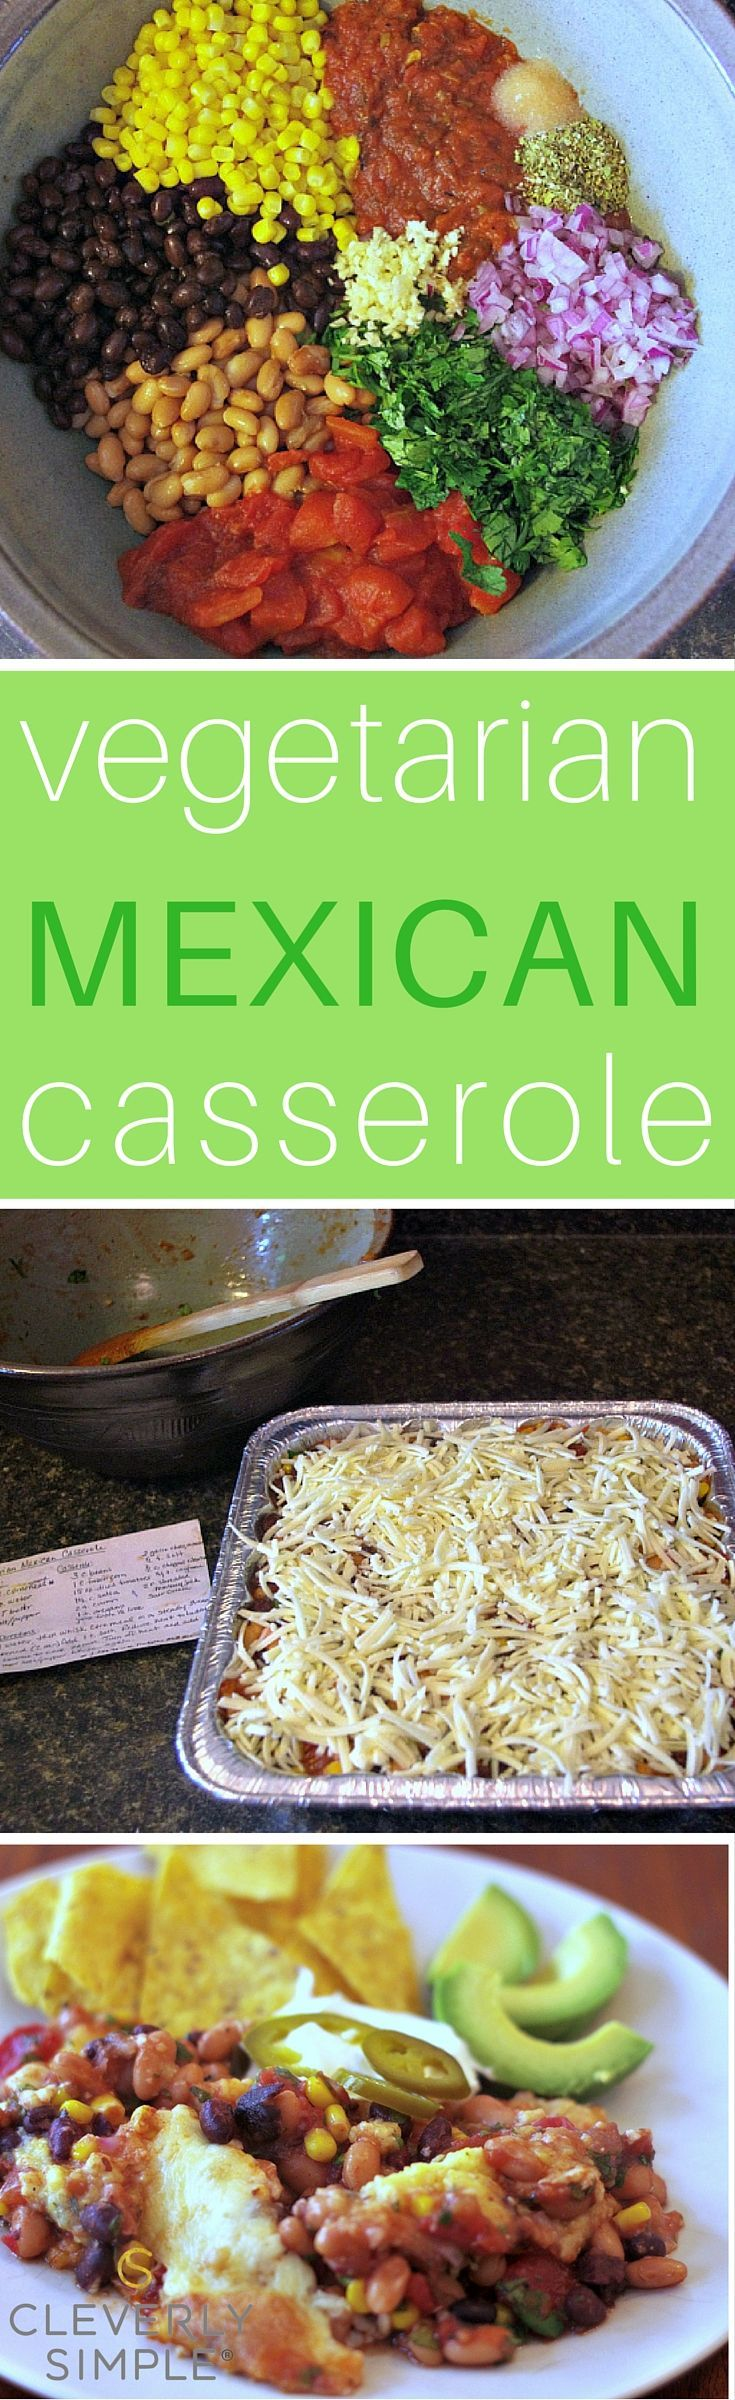 823 best food images on pinterest cooking food cooker recipes and favorite mexican casserole freezer meal vegetarian mexicanvegetarian mealsmexican recipespotluck recipesmeatless forumfinder Images